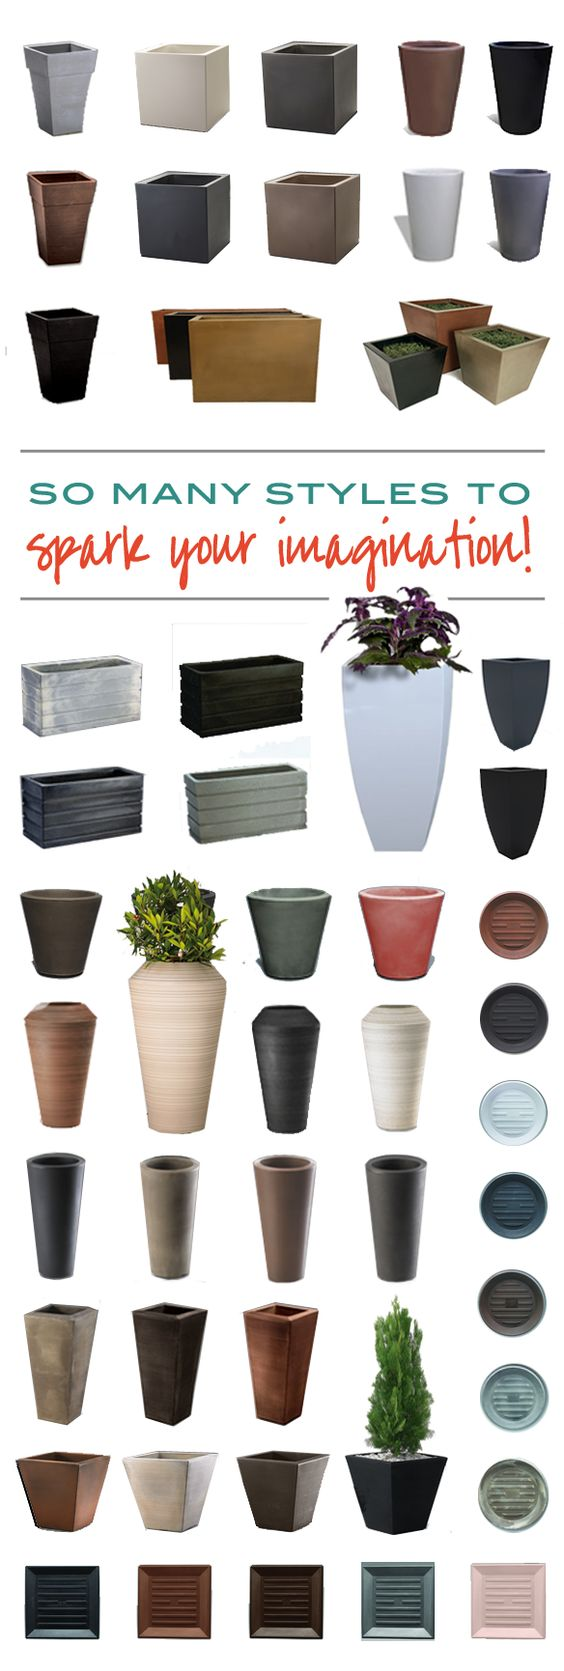 Plant Pots to Choose From